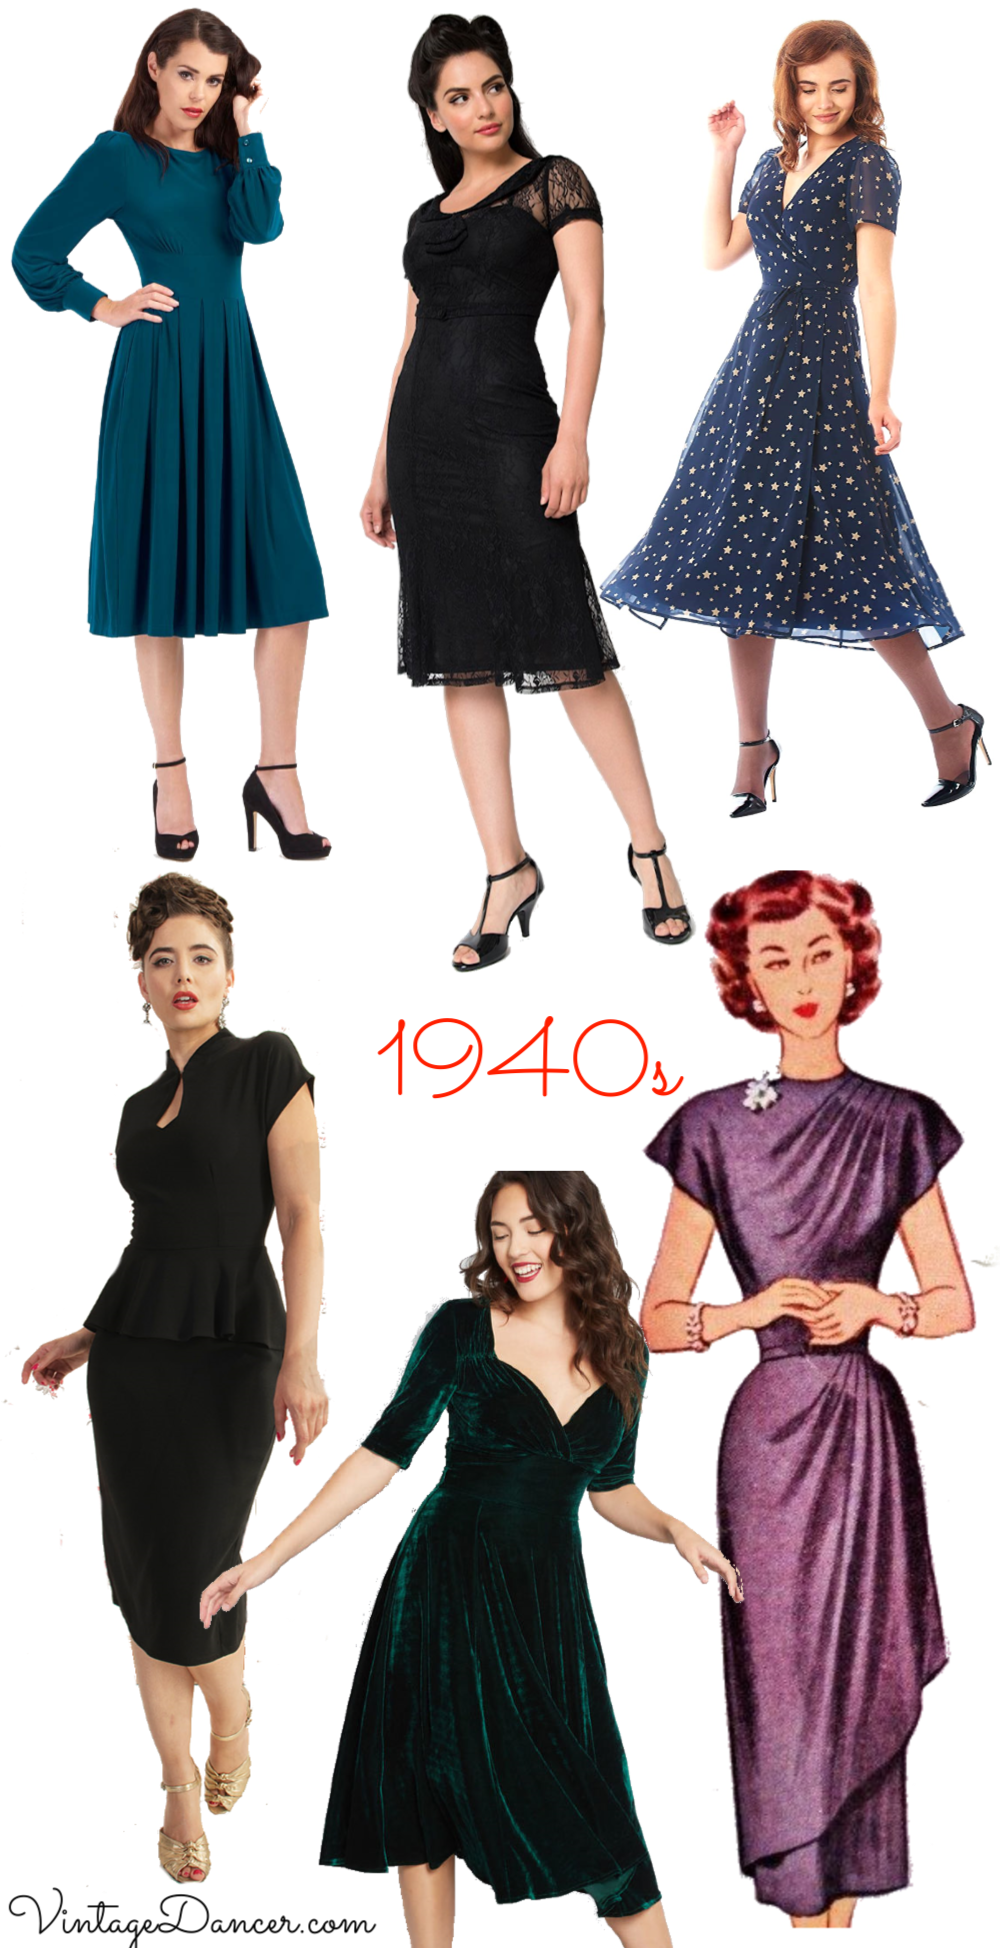 Kjoler Dresses I Dresses 1940s Cocktail Party 2018 wqYwSH